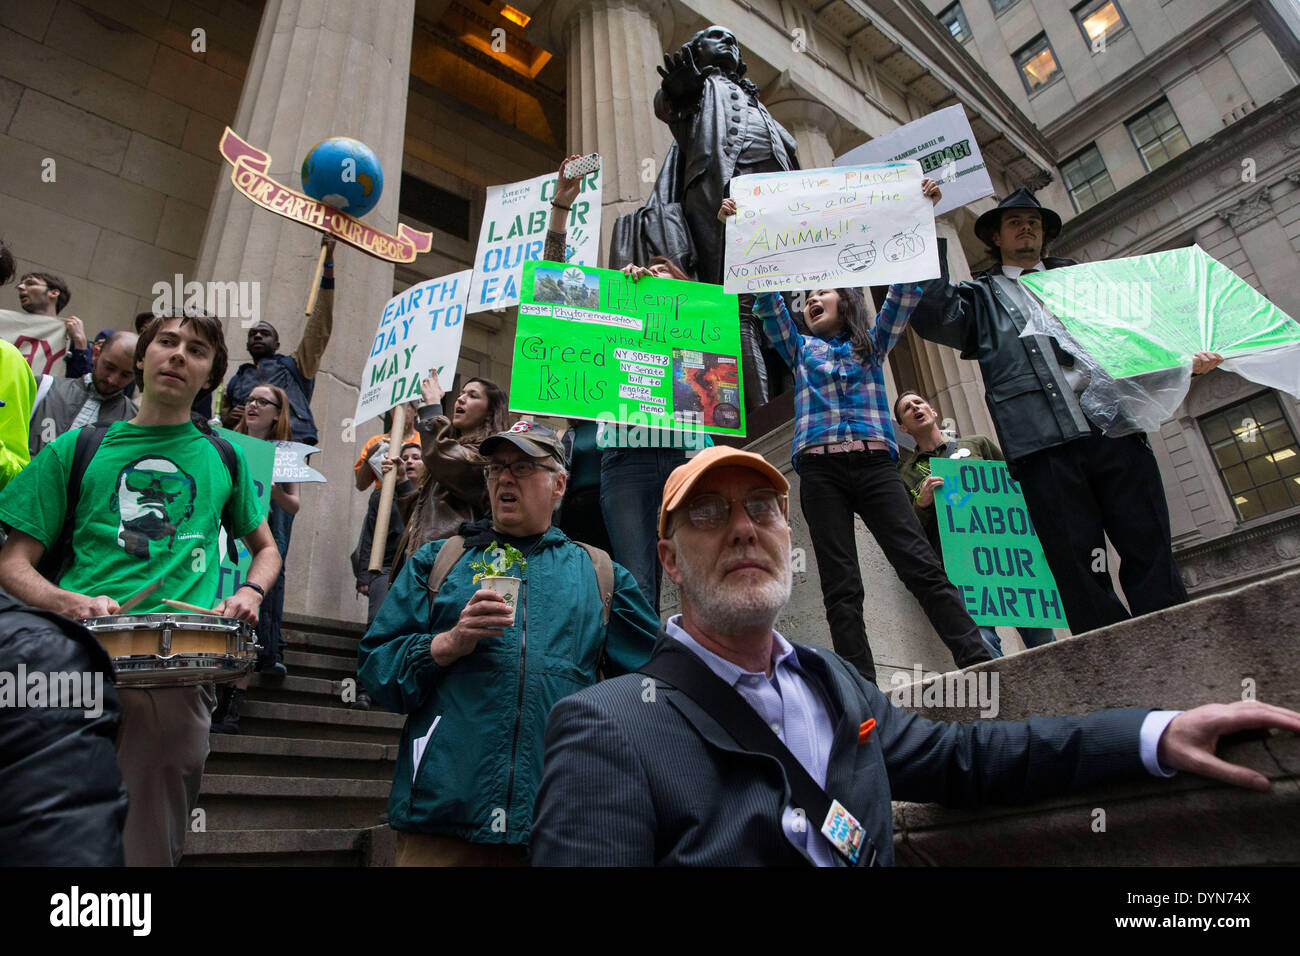 New York, USA. 22nd April 2014. Environmental activists attend a protest in Zuccotti Park on Earth Day. Protesters Stock Photo